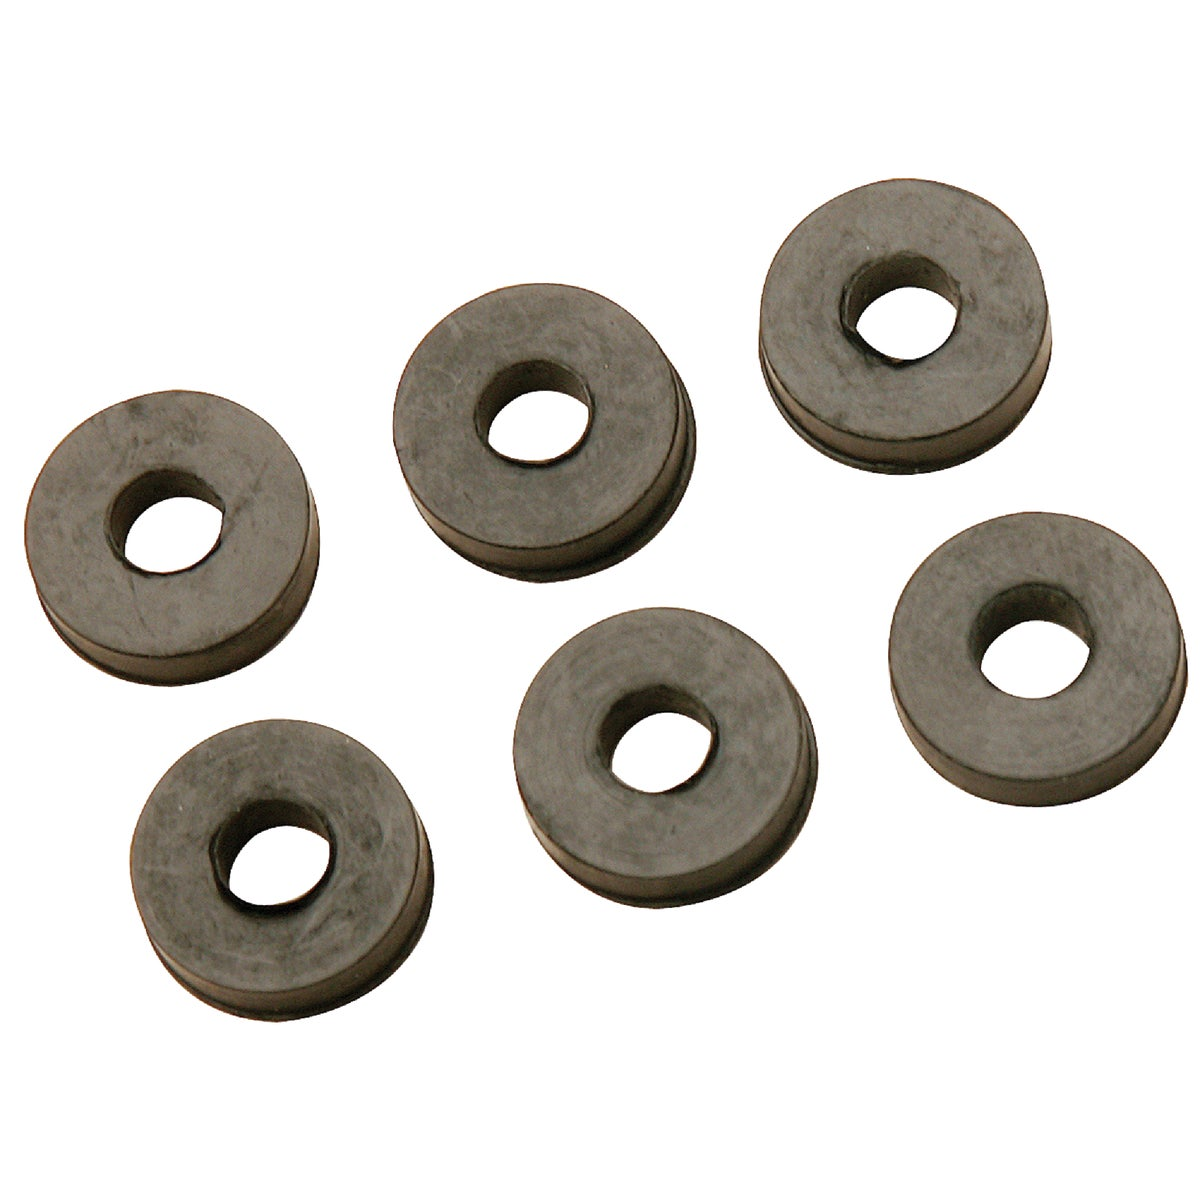 "6PK 1/2""R FLAT WASHER - 435309 by Plumb Pak/keeney Mfg"